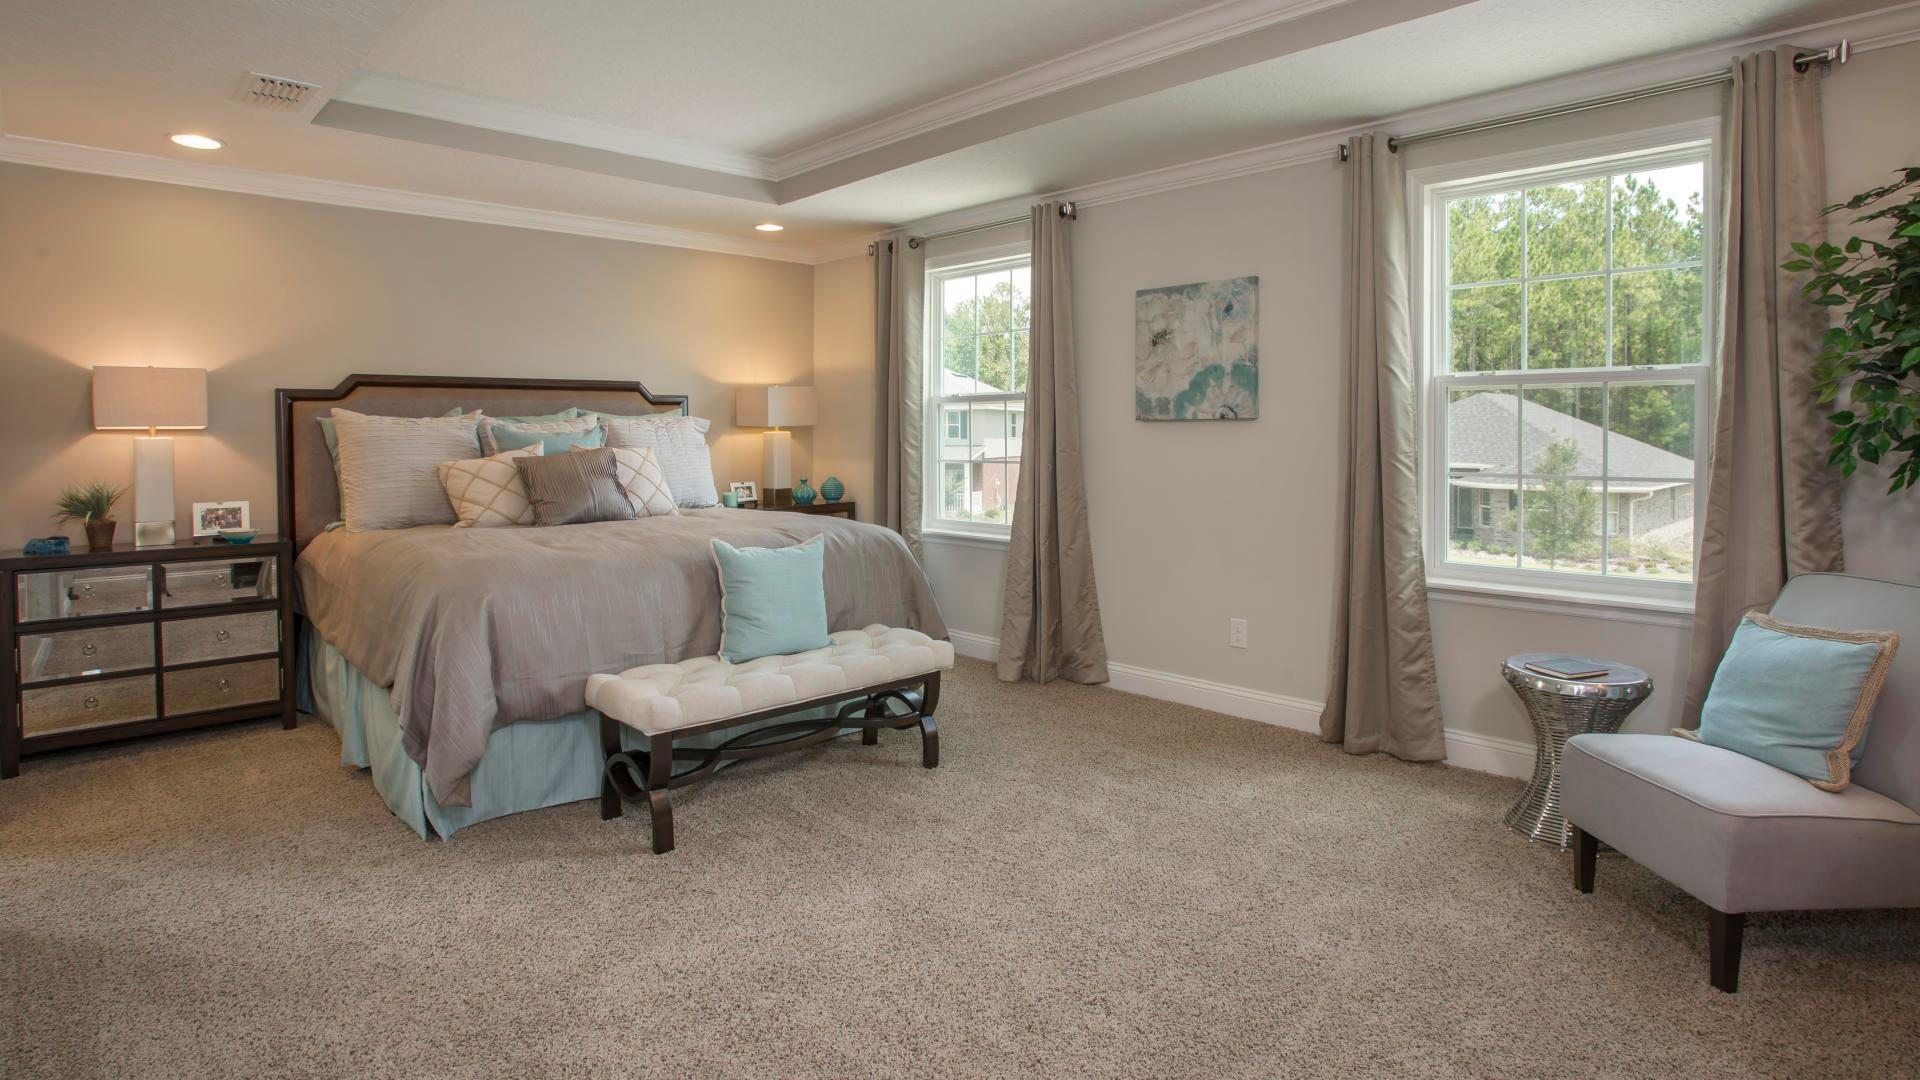 Bedroom featured in the Baybury By Maronda Homes in Melbourne, FL